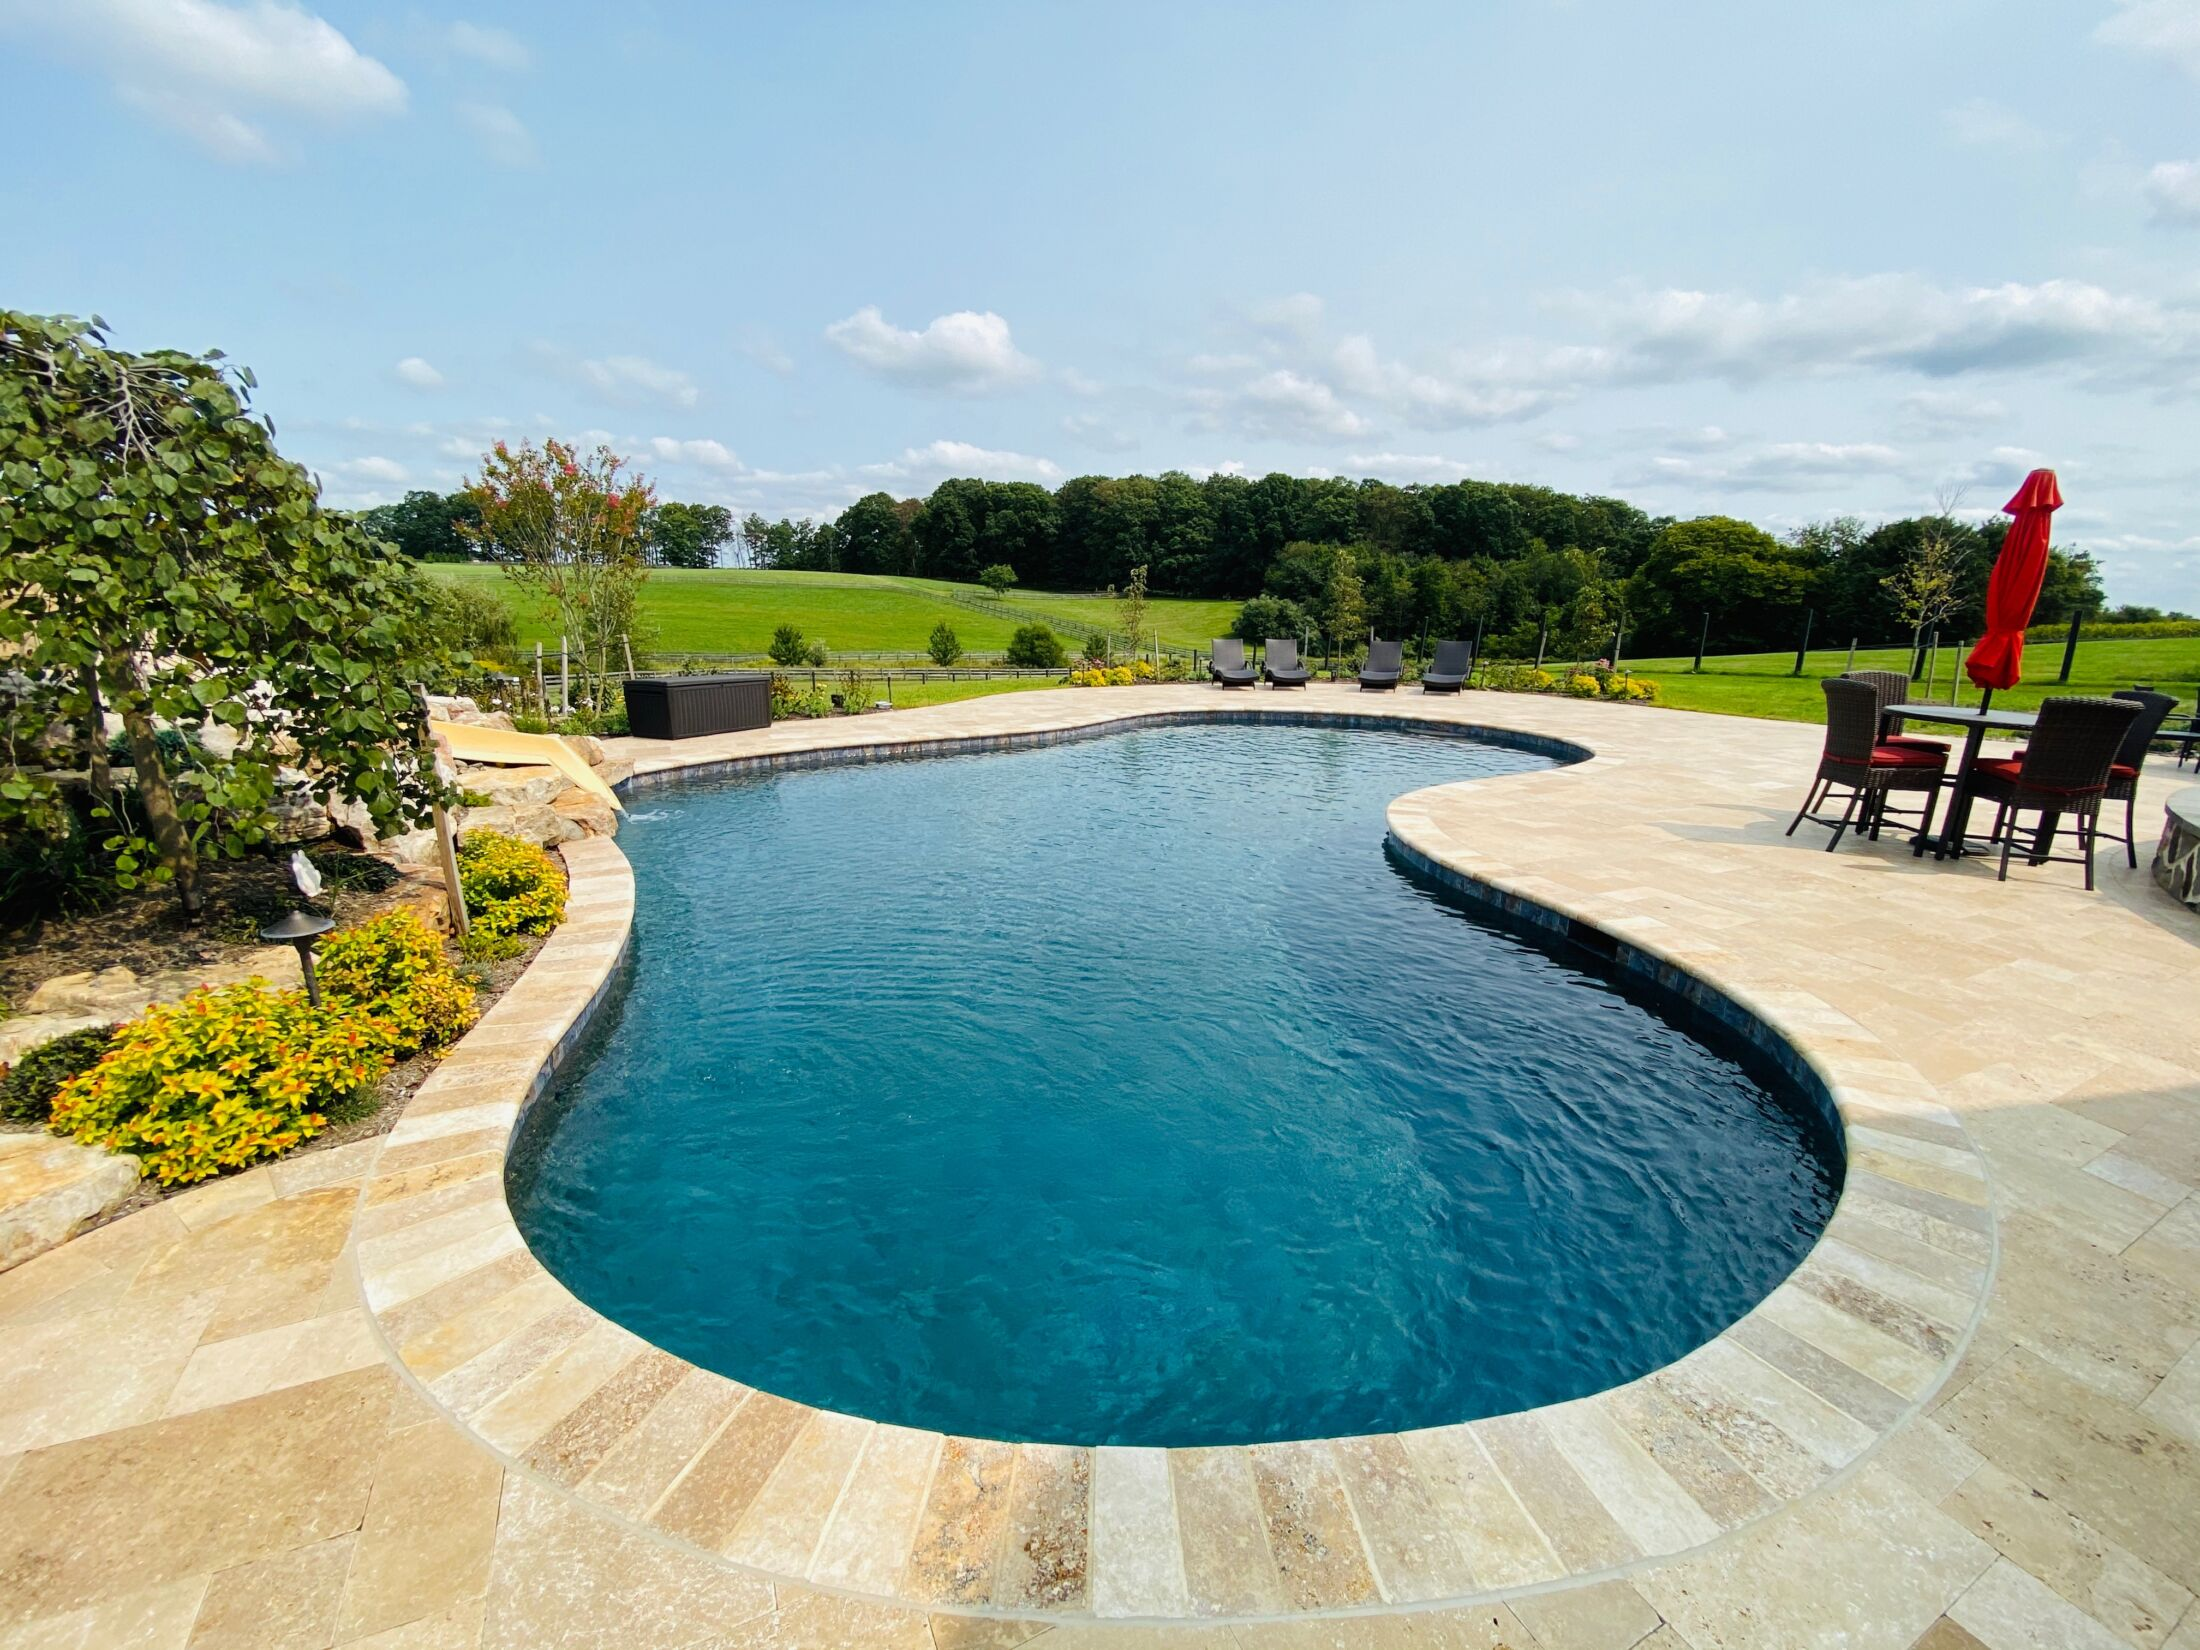 Inground Pool And Landscaping